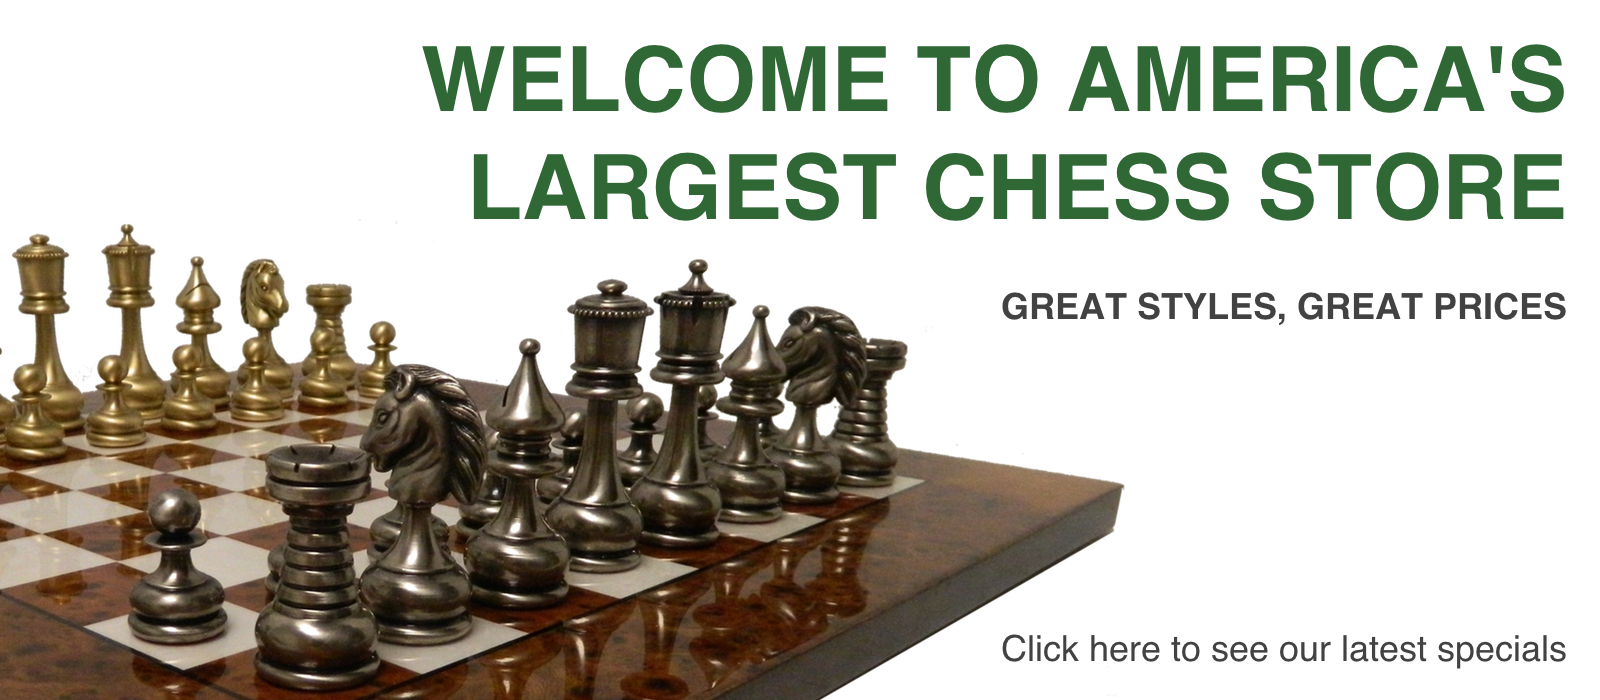 Your Move Chess & Games